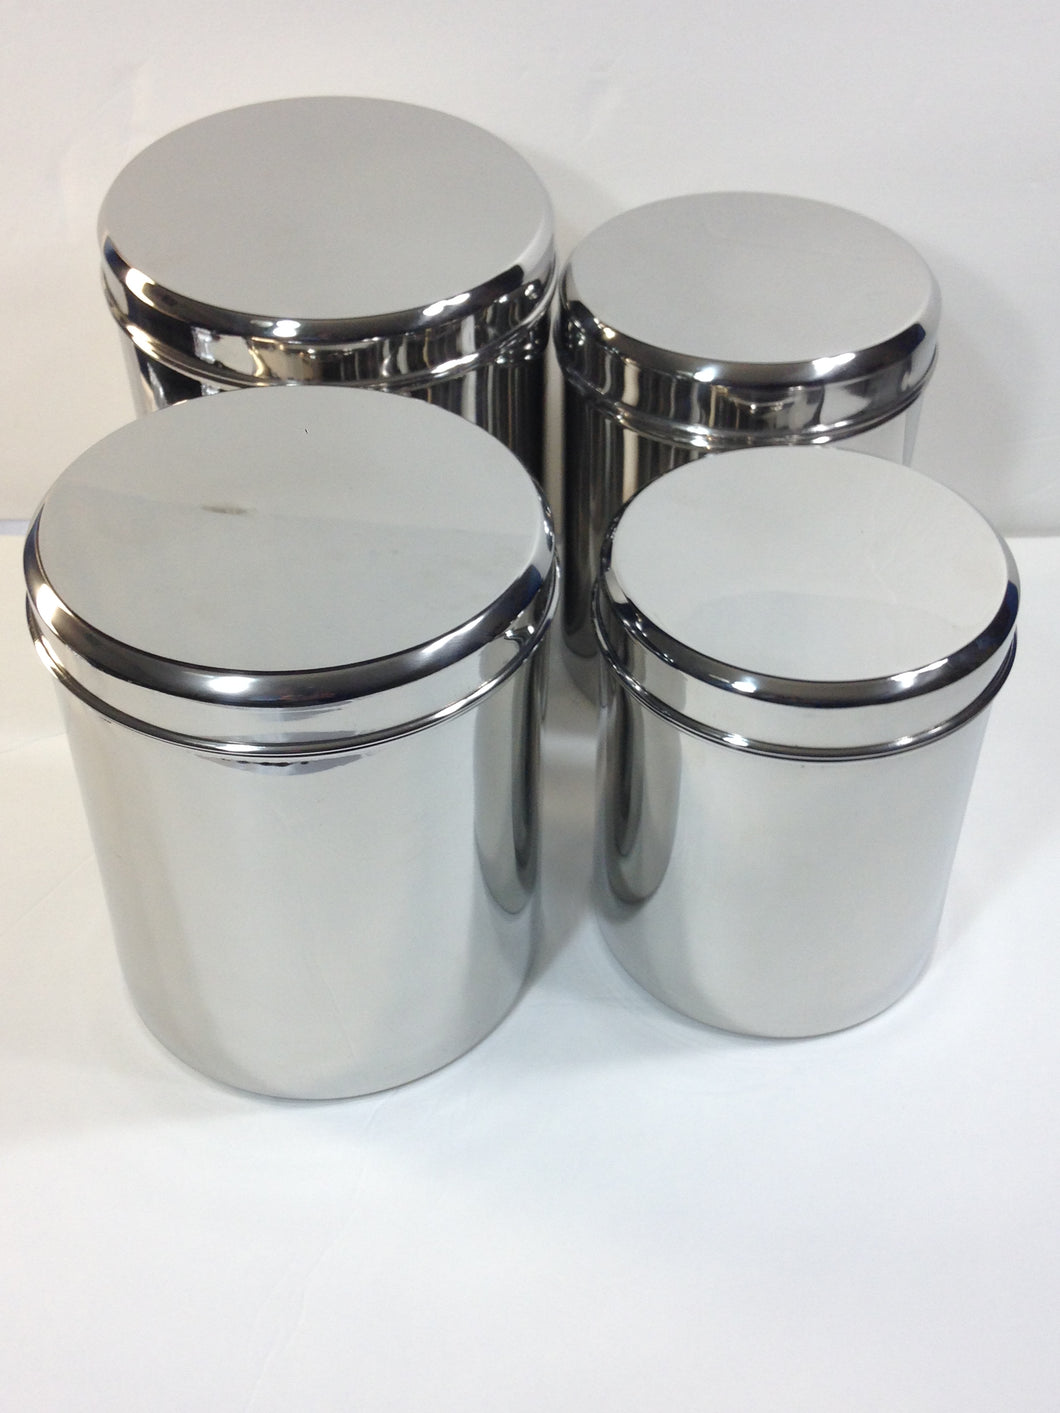 Qualways Jumbo Stainless Steel Kitchen Canister Set Of 4 (Set Of 4), 6.5